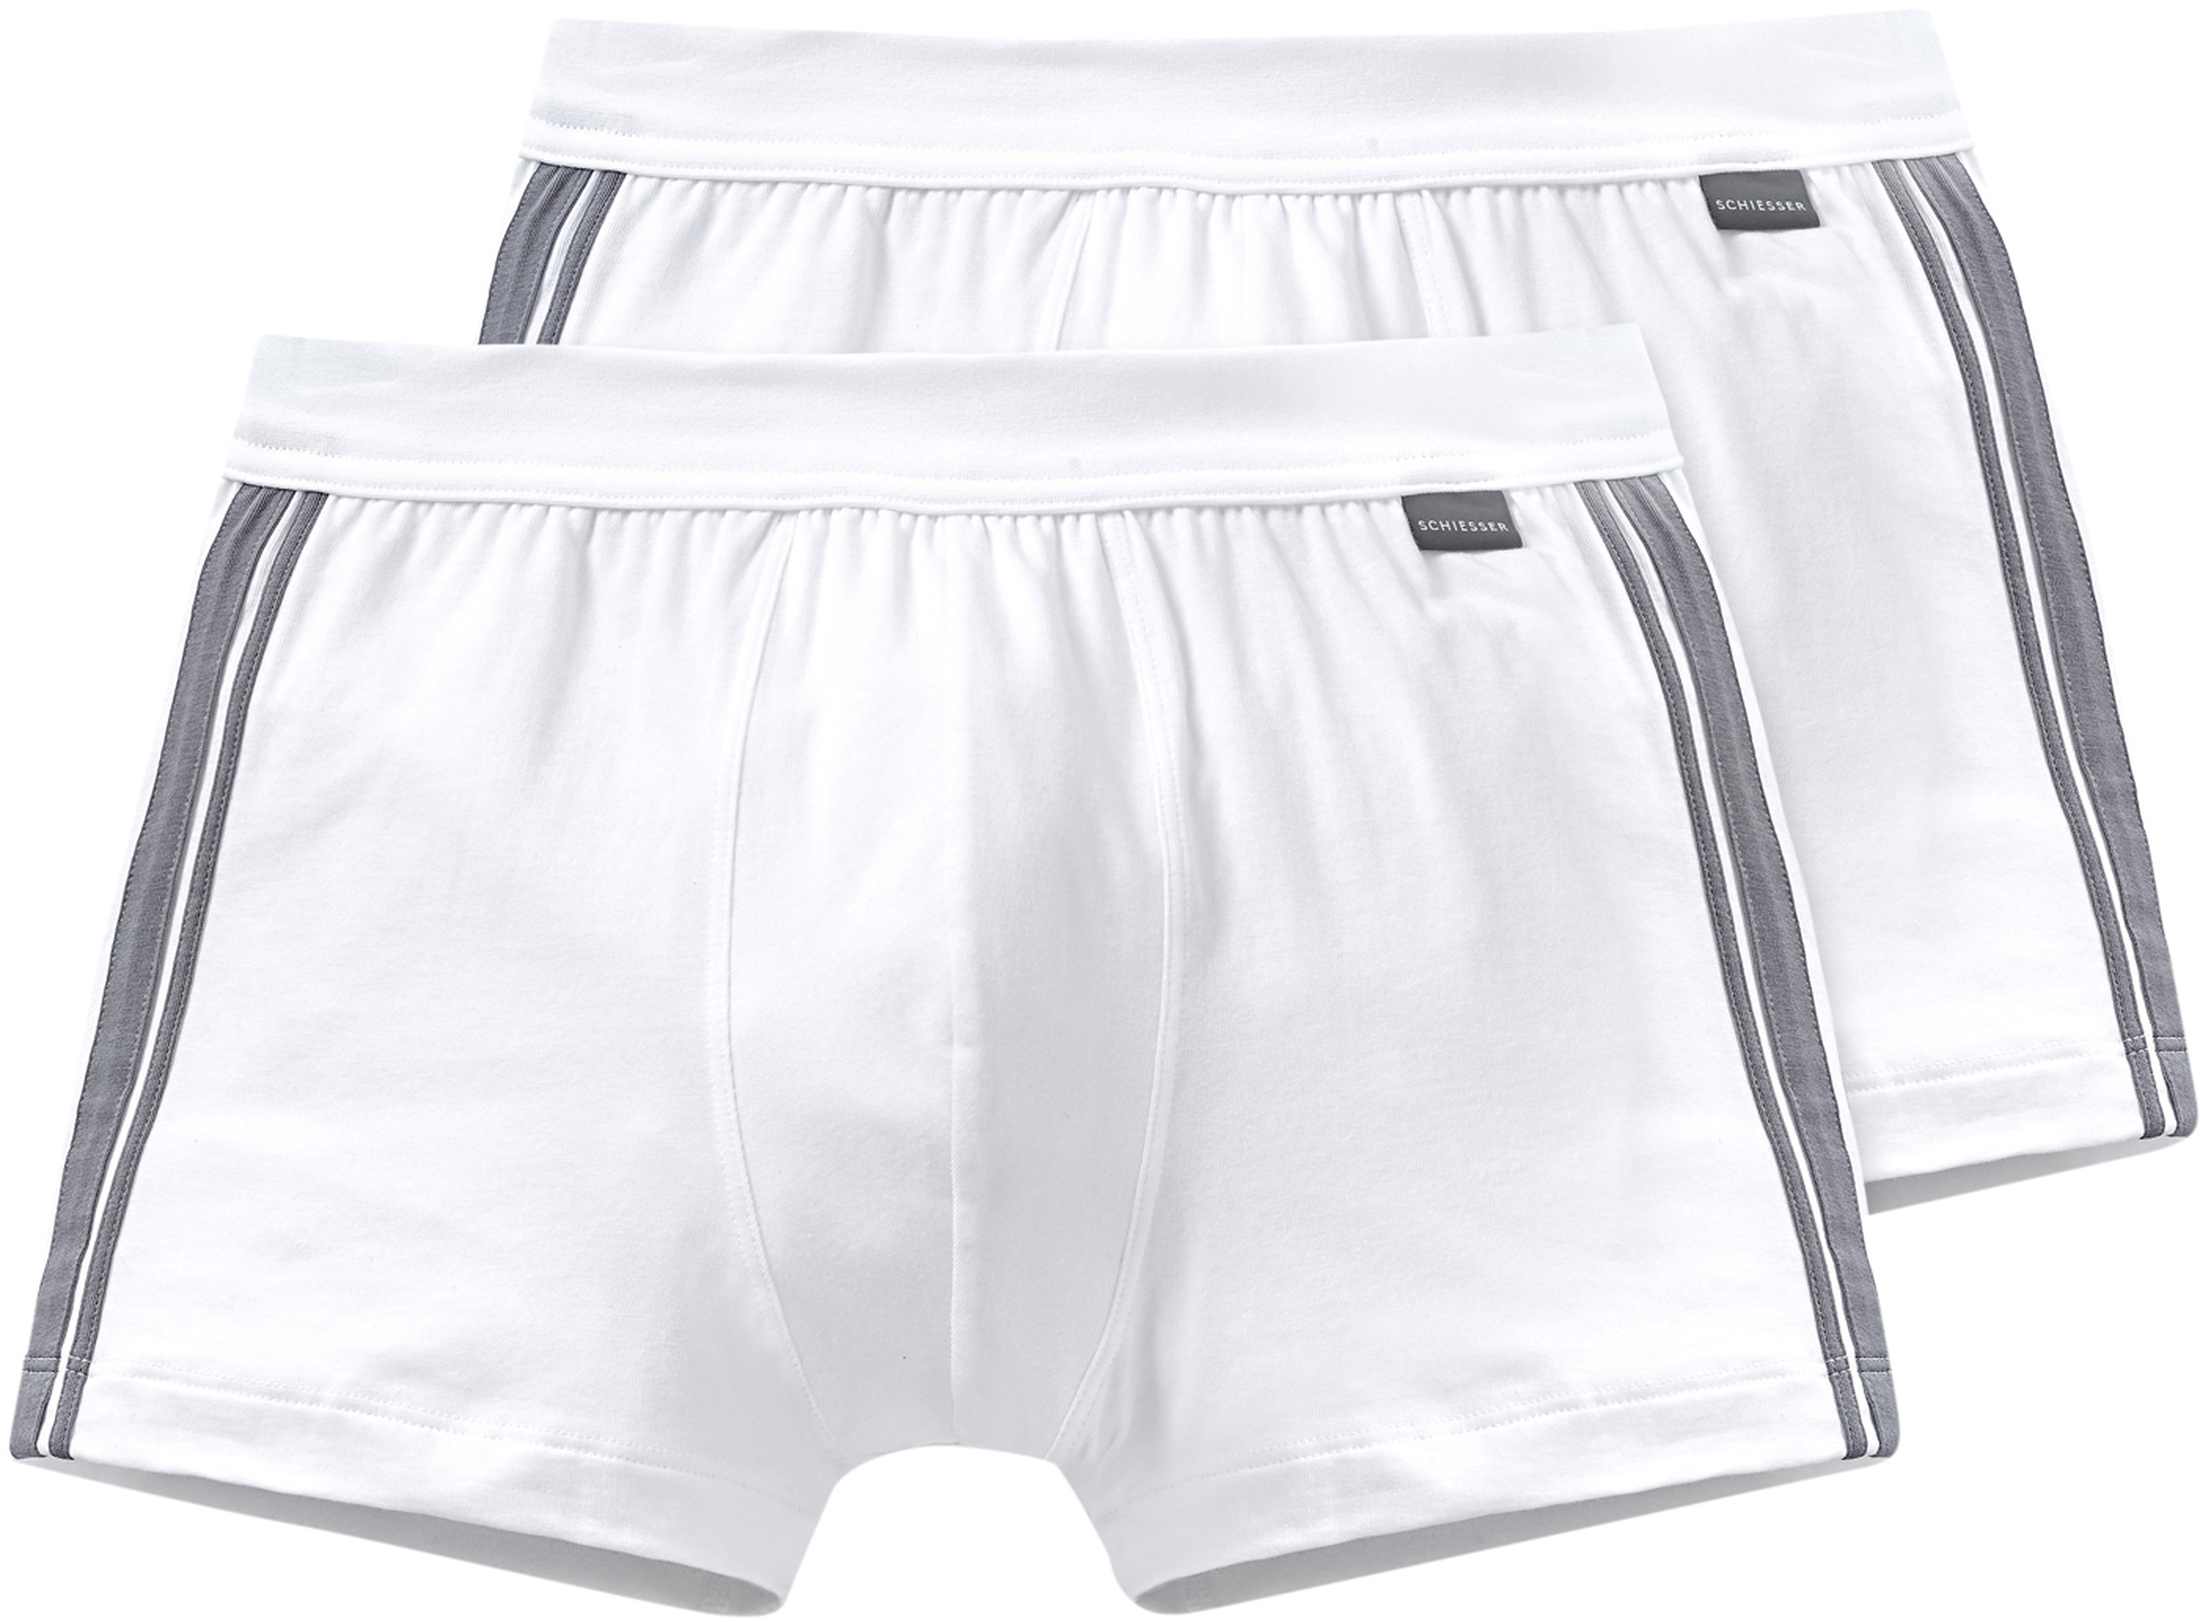 Schiesser Boxer Shorts White Striped 2-Pack